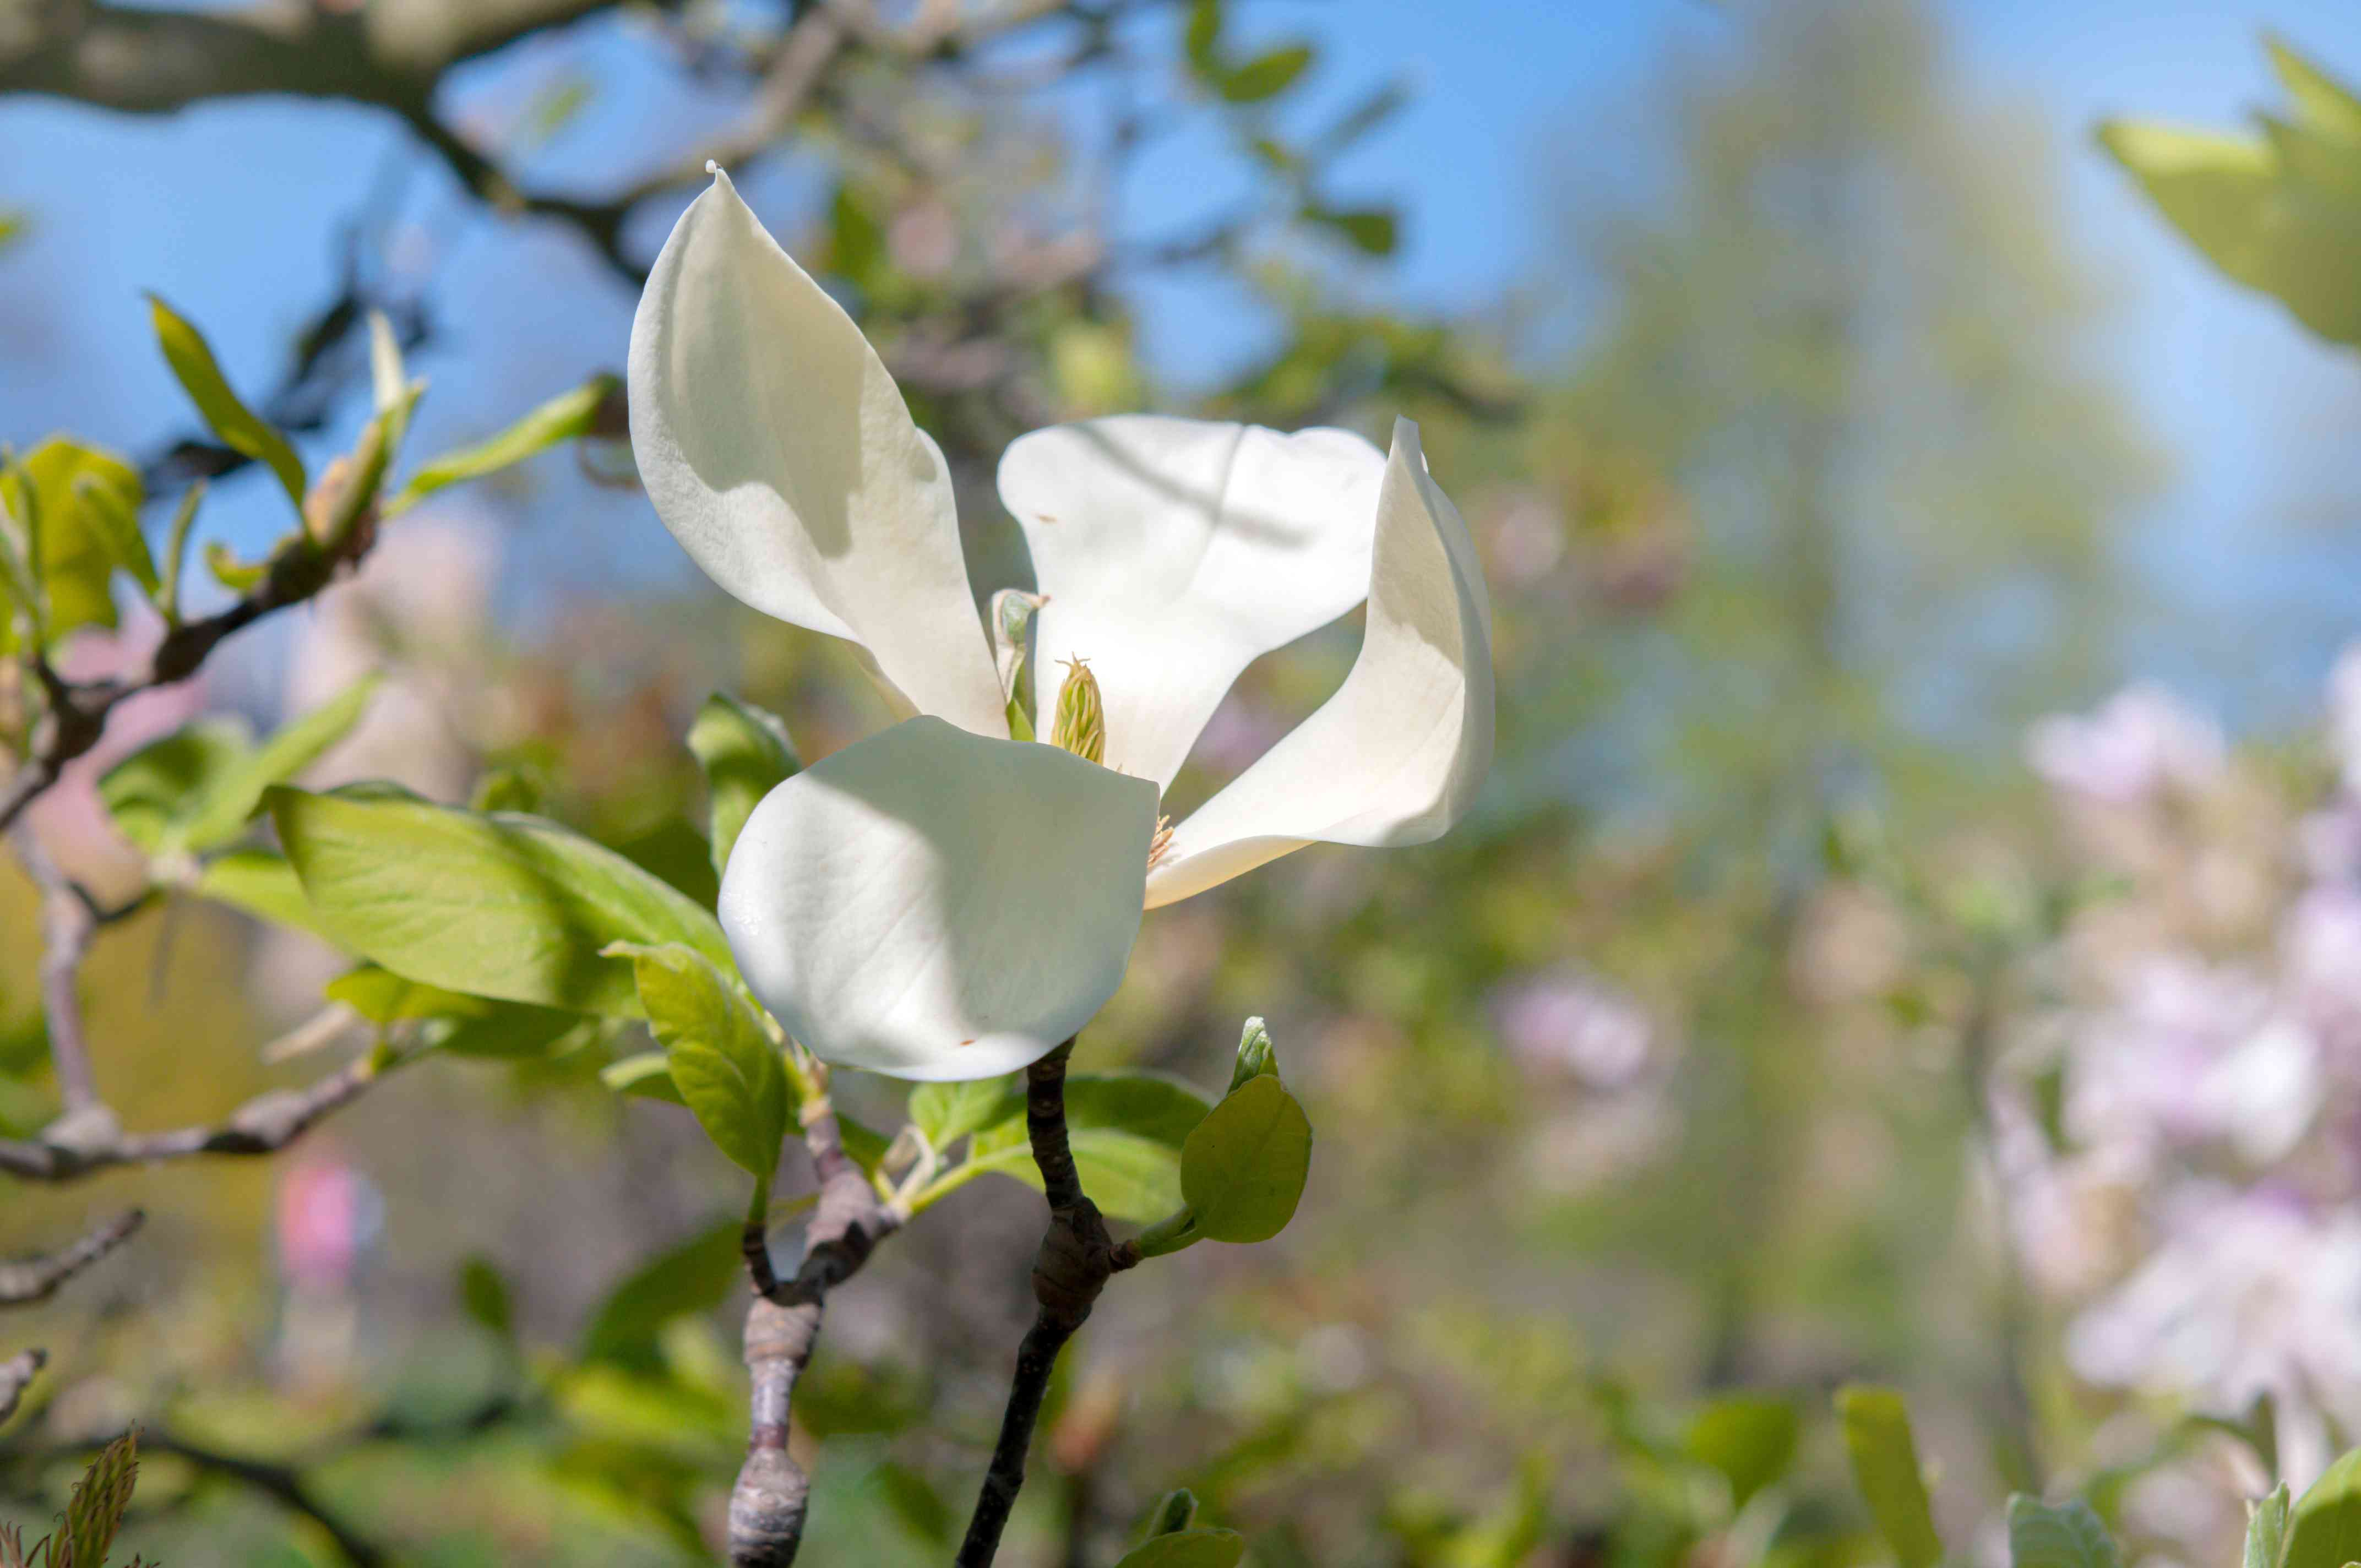 Cucumber tree flower with large white petals in sunlight closeup